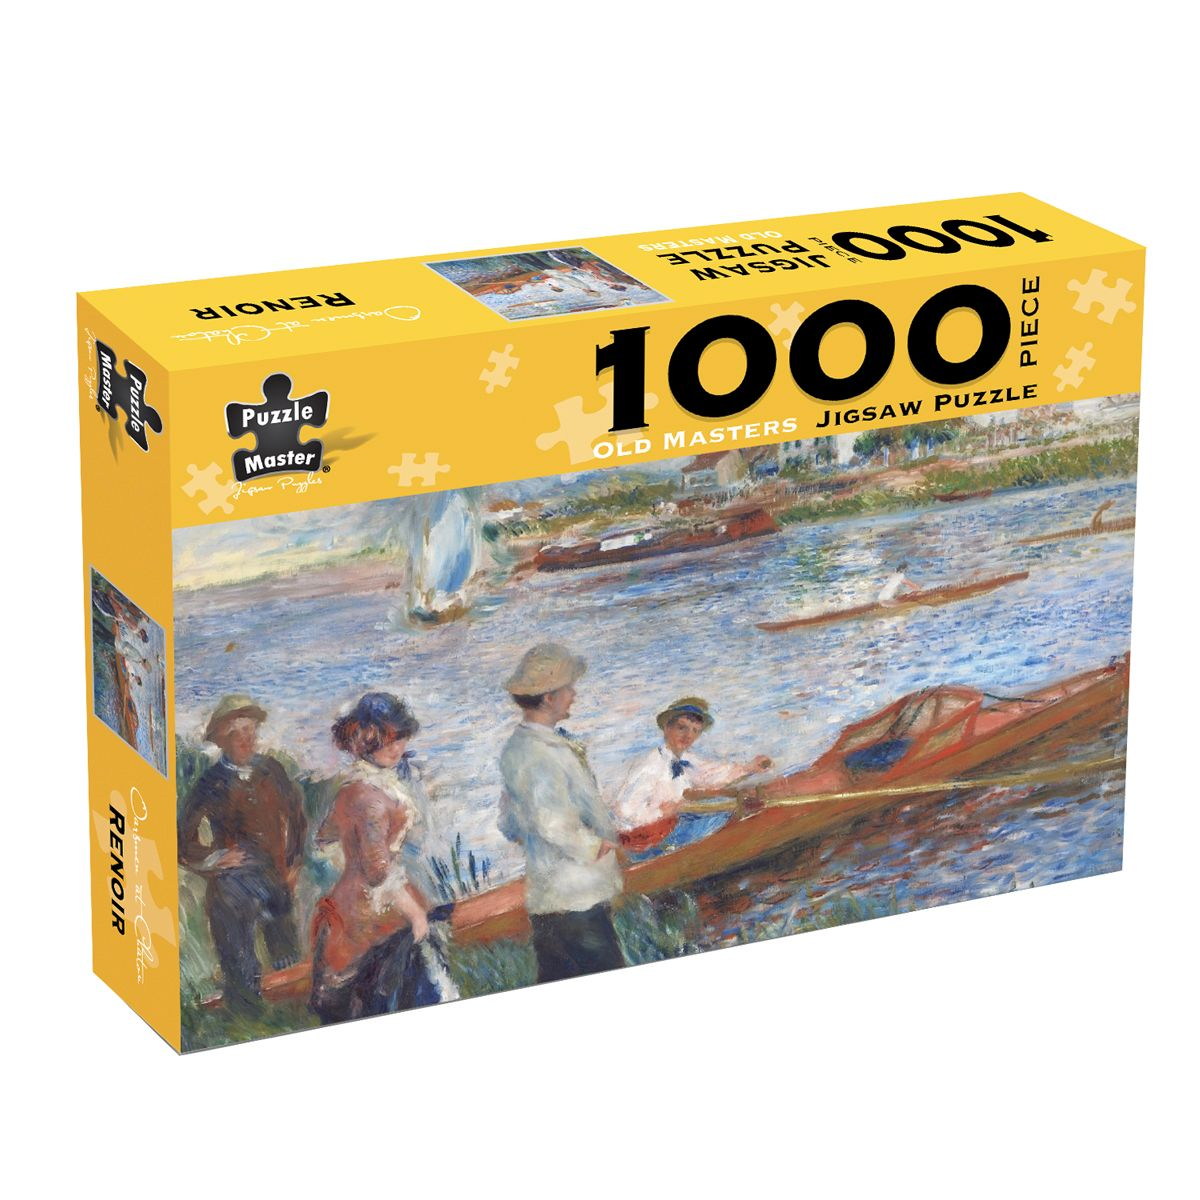 Puzzlers World ~ Old Master 1000pc Jigsaw Puzzle ~ Oarsman at Chatou by Renoir